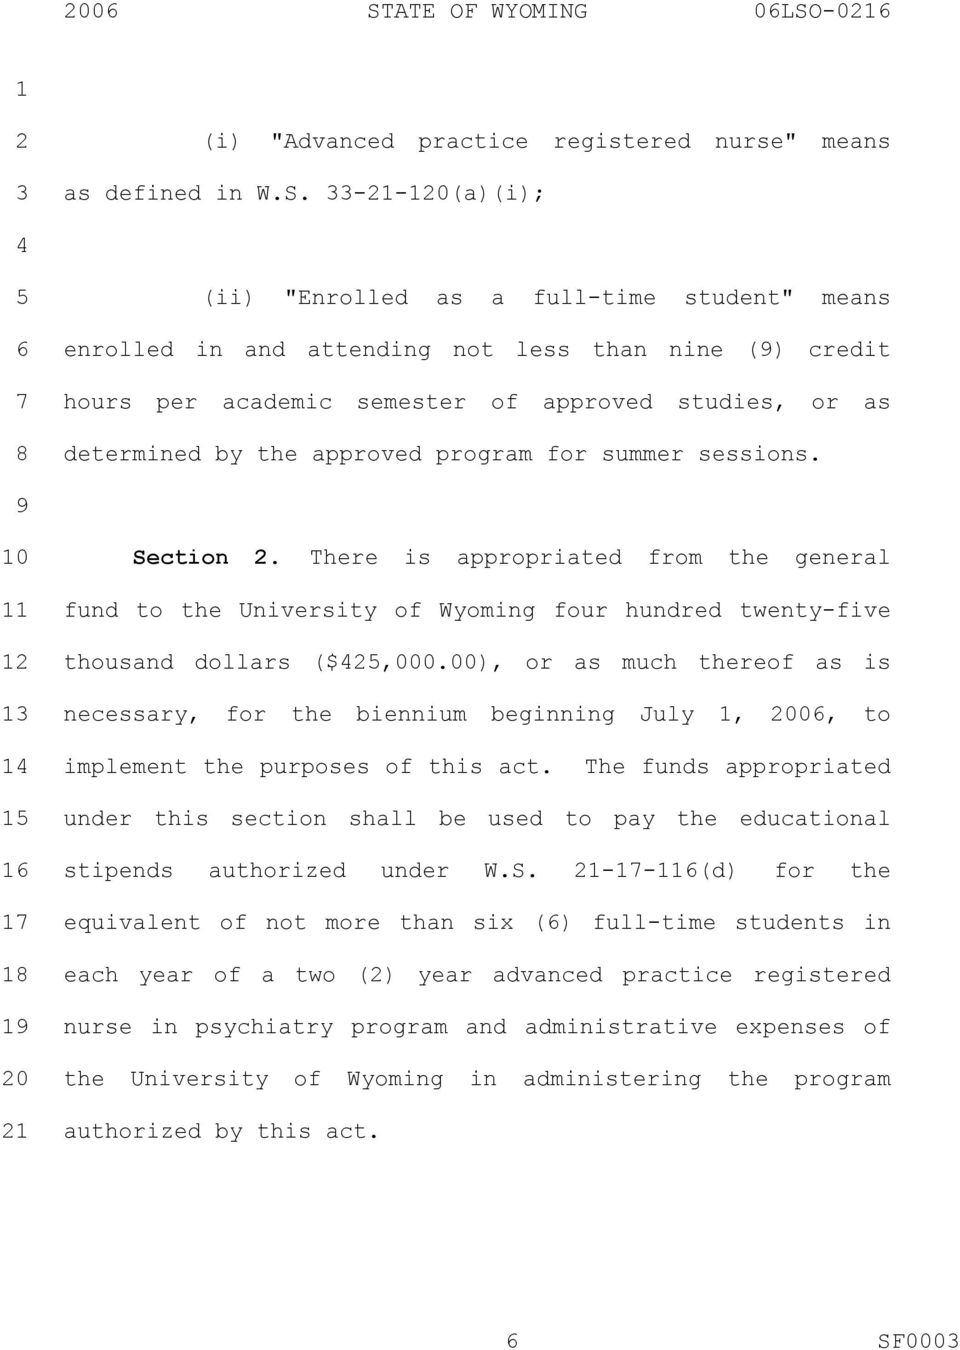 There is appropriated from the general fund to the University of Wyoming four hundred twenty-five thousand dollars ($,000.